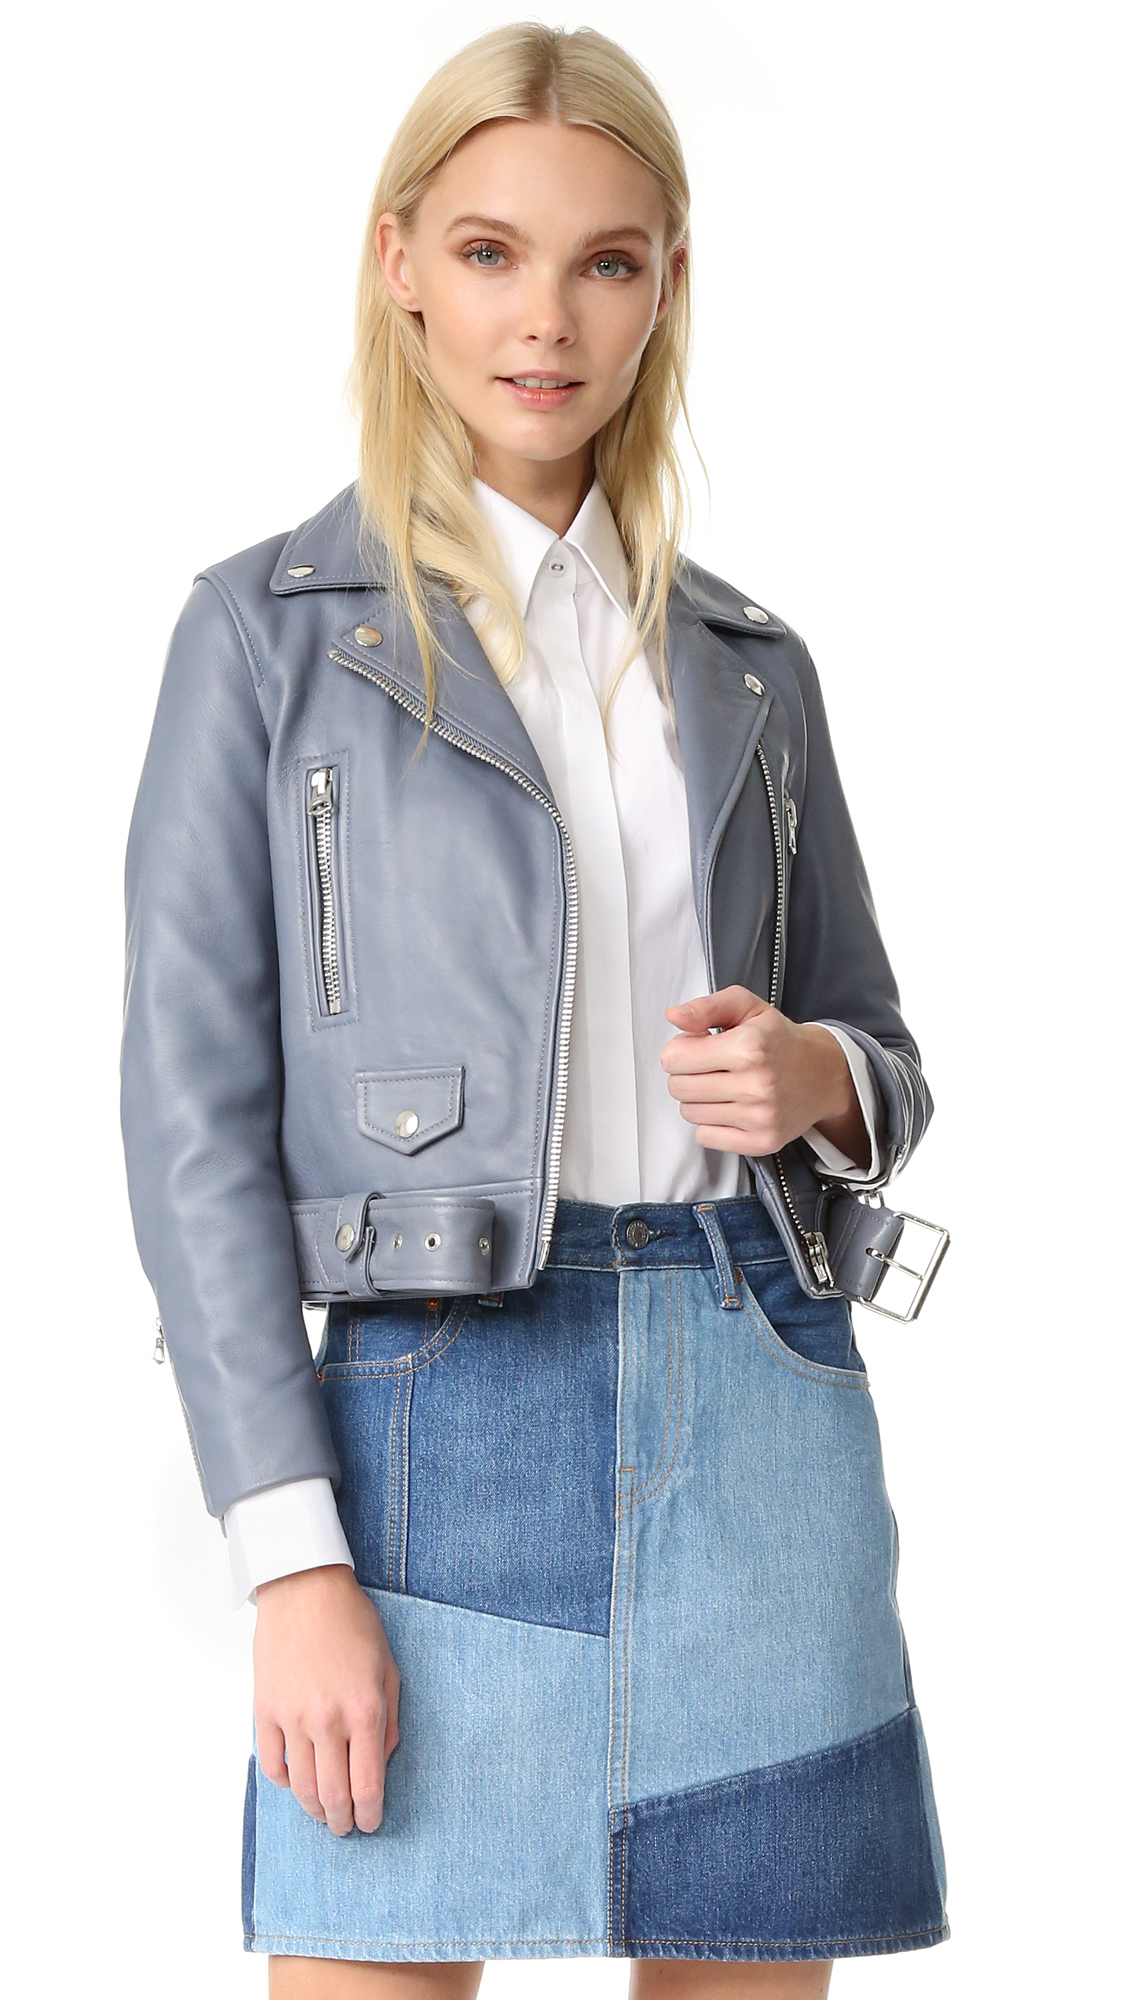 Acne Studios Mock Leather Moto Jacket - Dirty Slate Blue at Shopbop